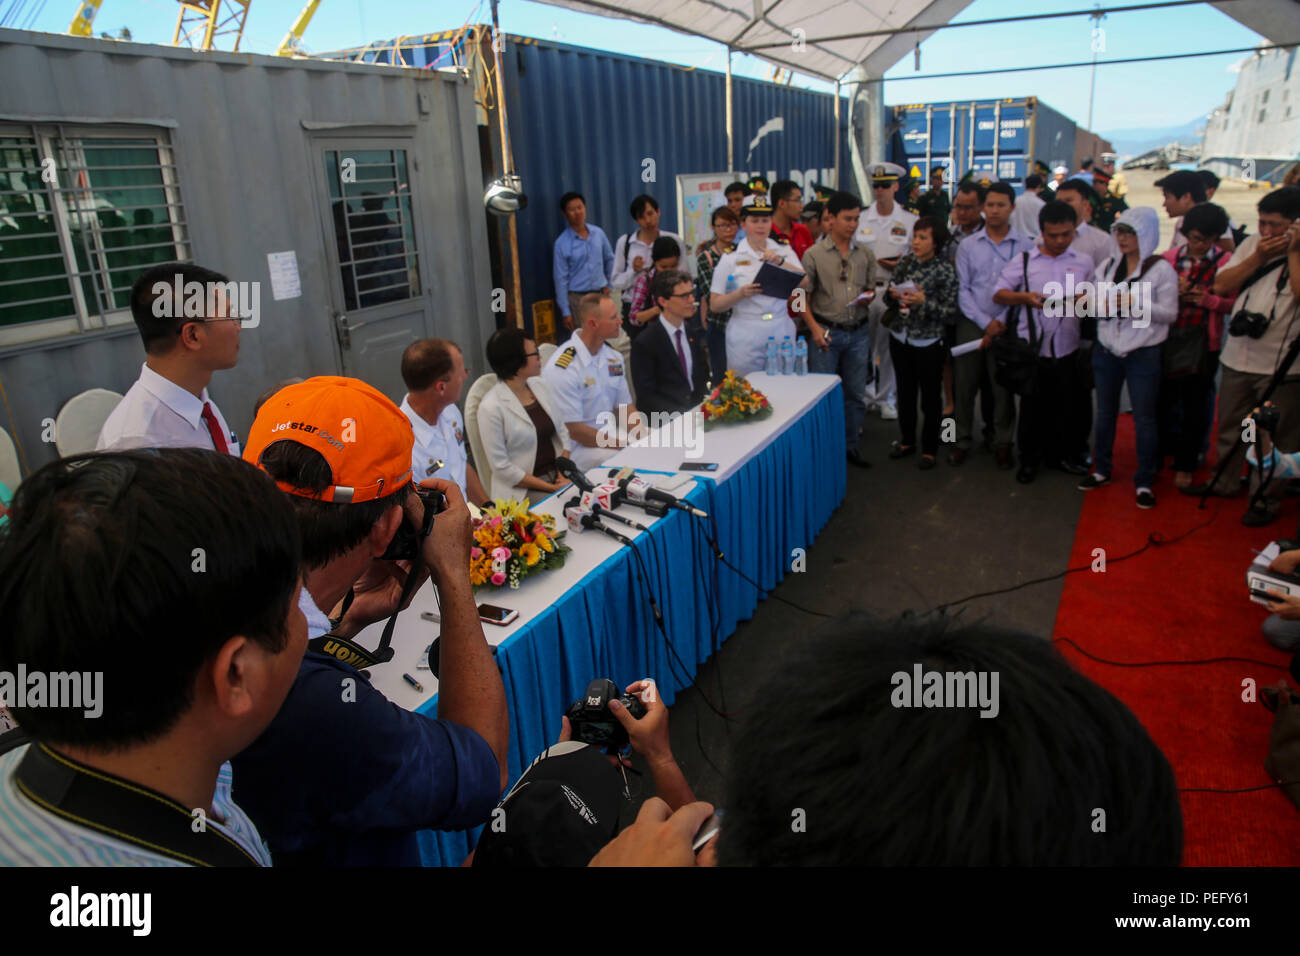 150817-M-GO800-162 DA NANG, Vietnam (Aug. 17, 2015) – Pacific Partnership 2015 leadership answers questions from local Vietnamese news outlets August 17. Task Force Forager, embarked aboard the Military Sealift Command joint high speed vessel USNS Millinocket (JHSV 3) is serving as the secondary platform for Pacific Partnership, led by an expeditionary command element from the Navy's 30th Naval Construction Regiment (30 NCR) from Port Hueneme, Calif. Now in its 10th iteration, Pacific Partnership is the largest annual multilateral humanitarian assistance and disaster relief preparedness missio - Stock Image